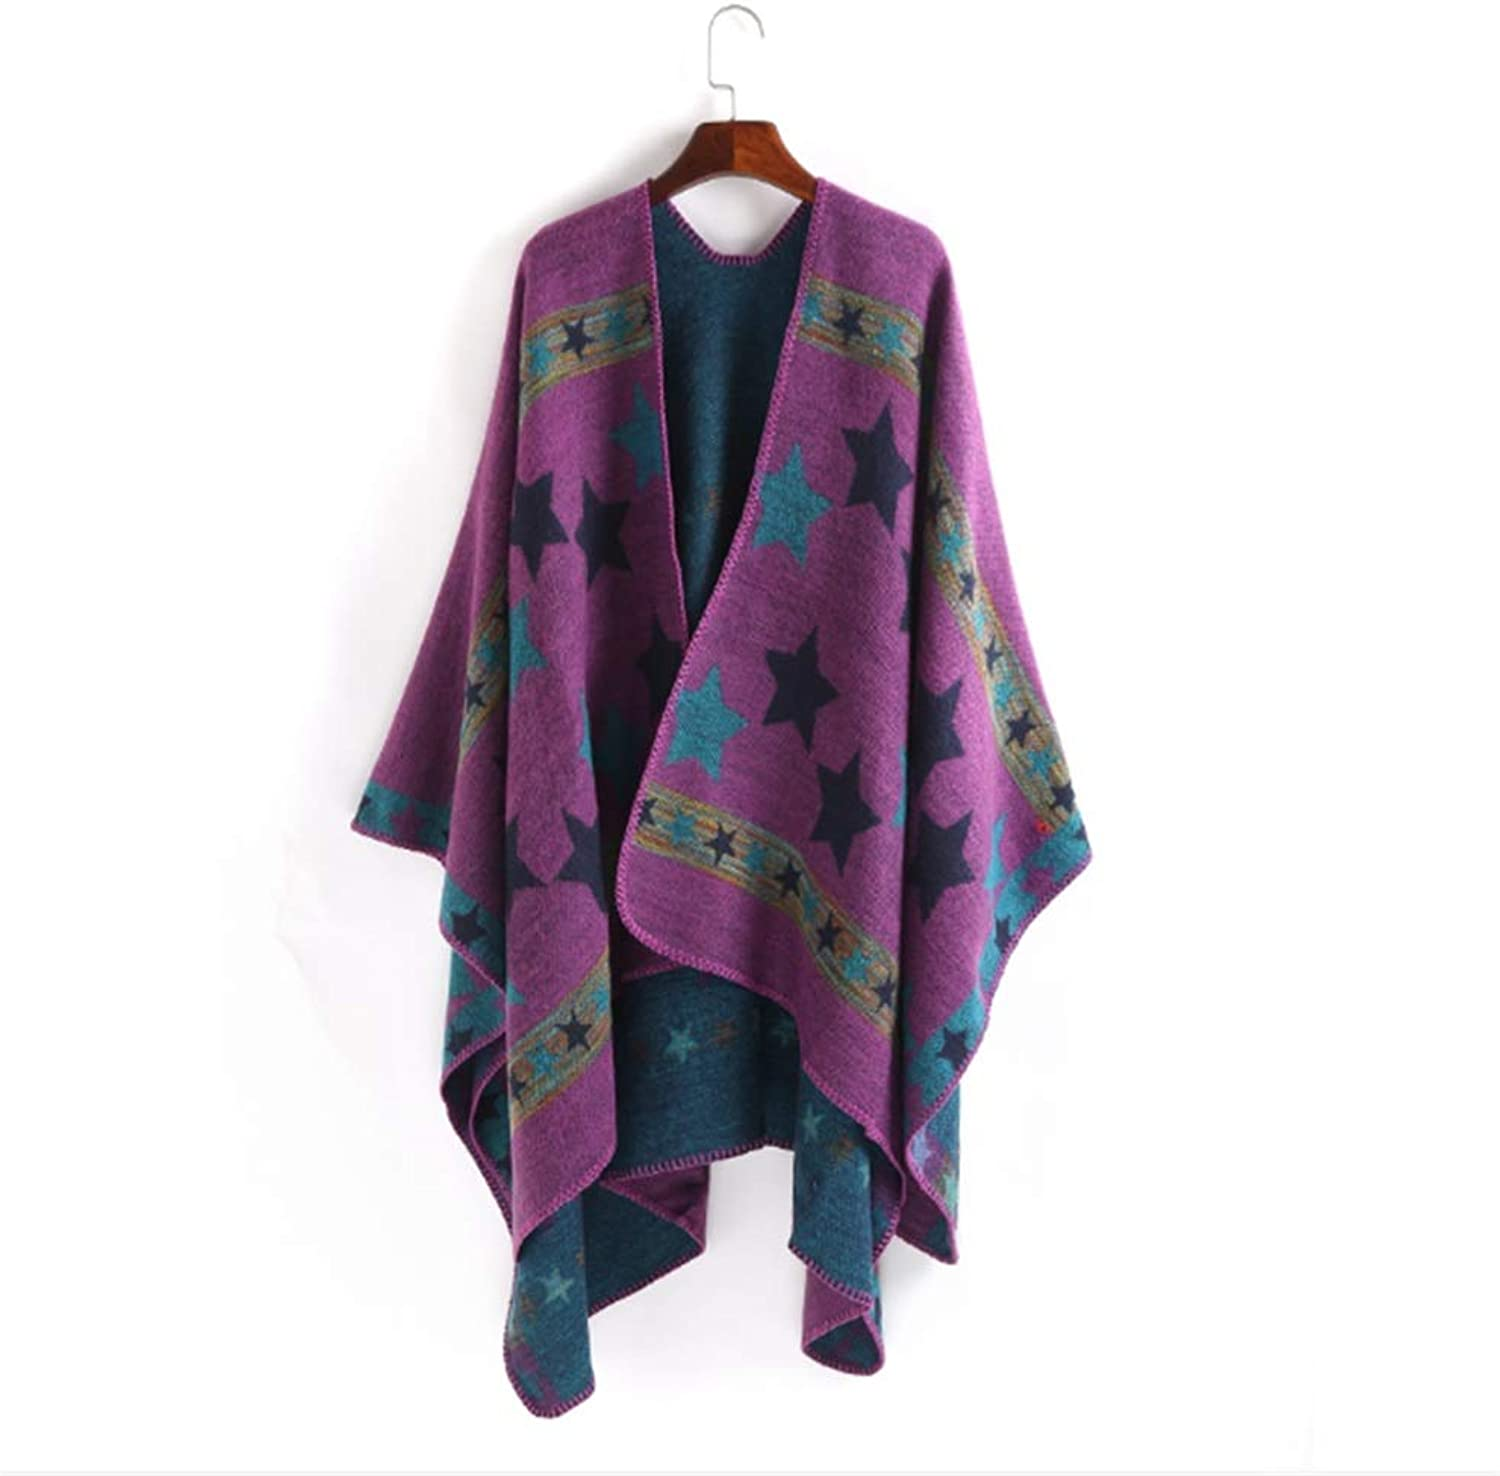 Stars Printing Design Lady Cape Simple Pure color Shawls and Wraps Scarf for Women Bohemia Shawl Wrap Scarf (color   Purple)